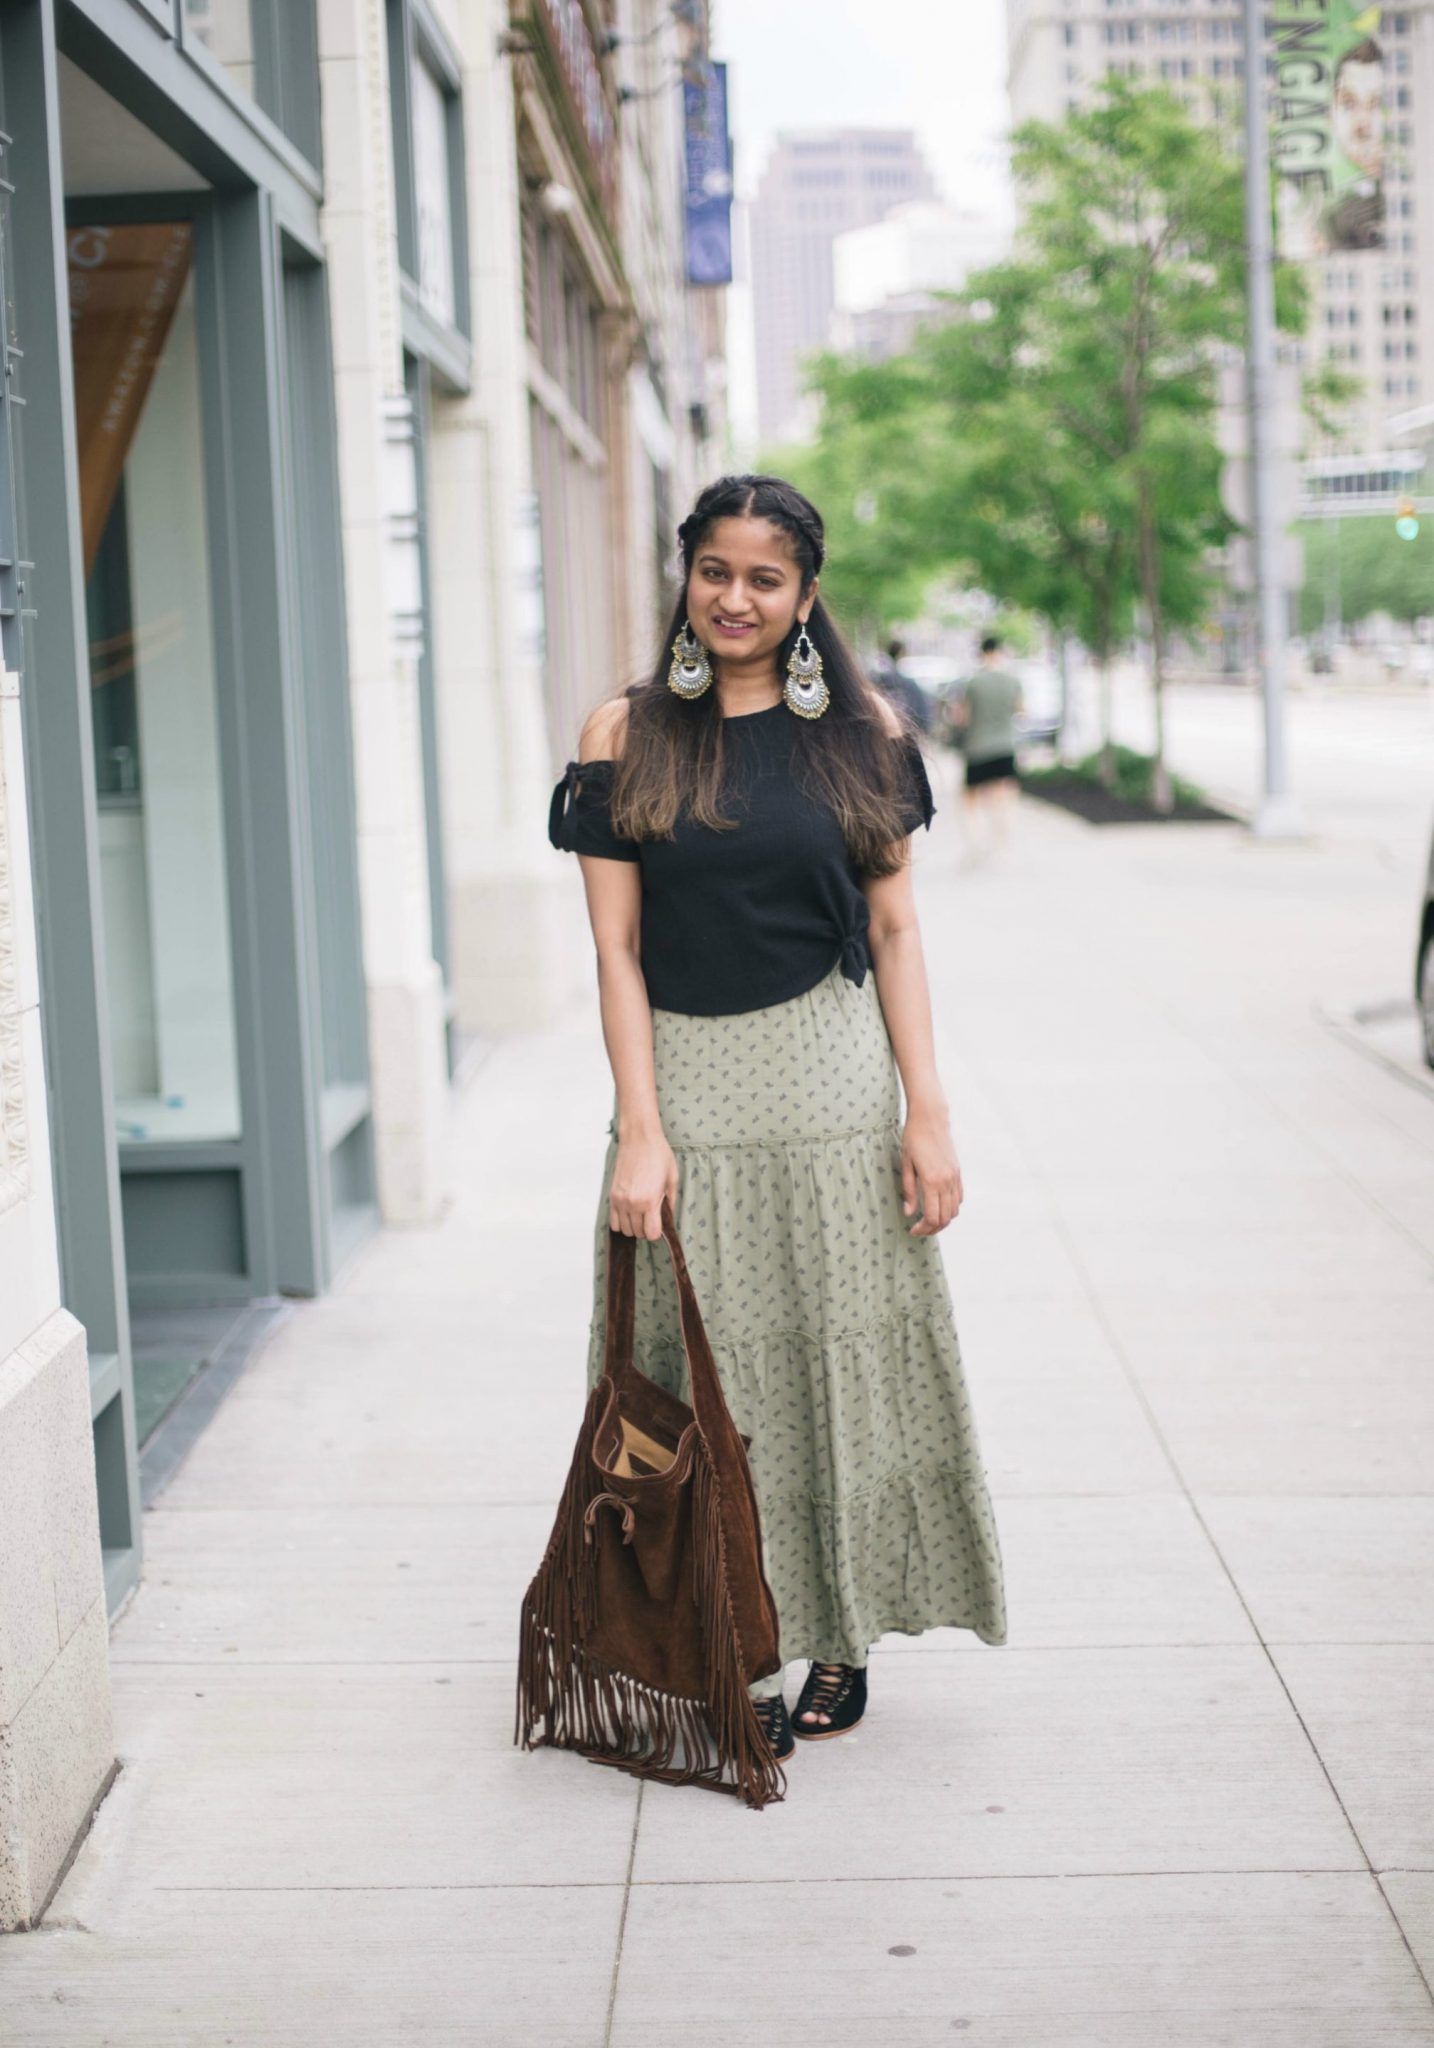 target-mossimo-maxi-skirt - Maxi Skirts For Petites featured by popular Ohio modest fashion blogger, Dreaming Loud